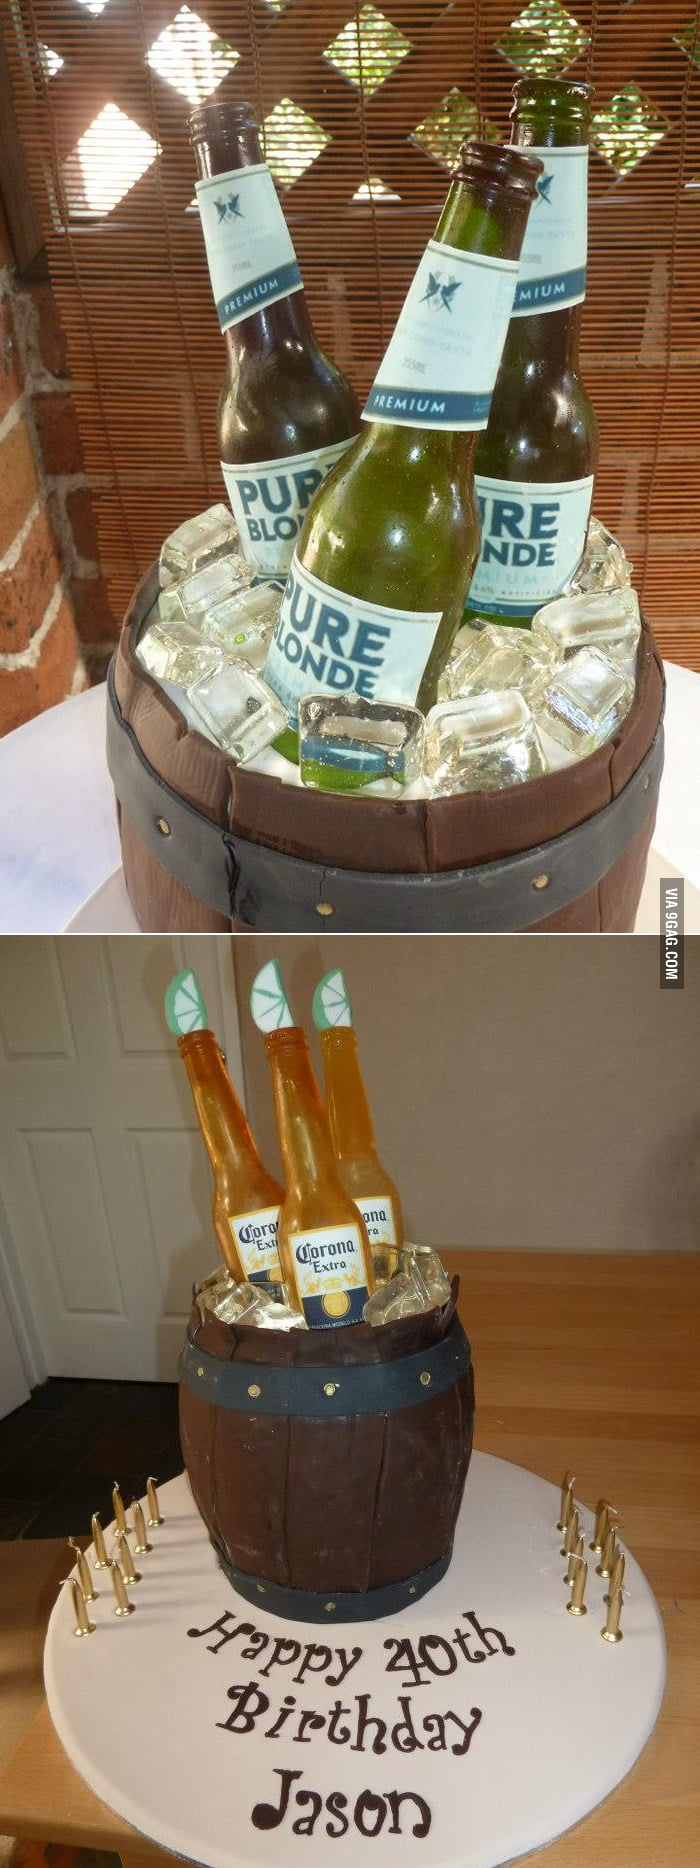 "The whole beer cake is edible, including the ""bottles""!"